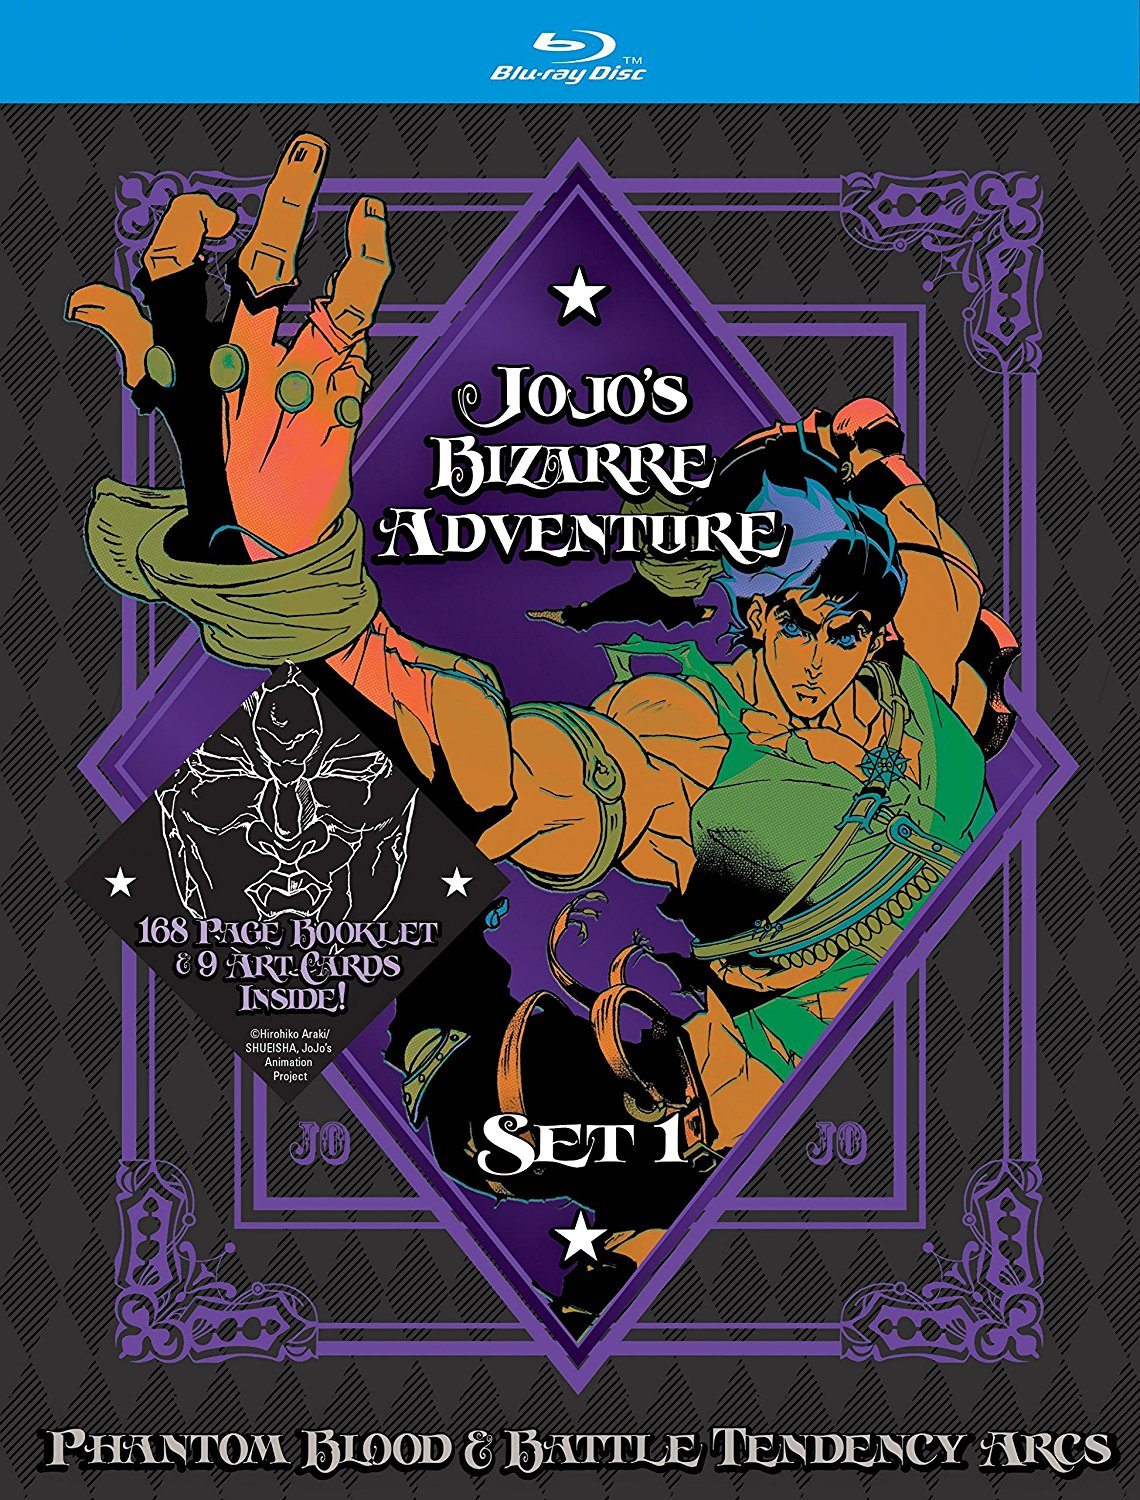 Jojo's Bizarre Adventure Blu-Ray Set 1 Review | Otaku Dome | The